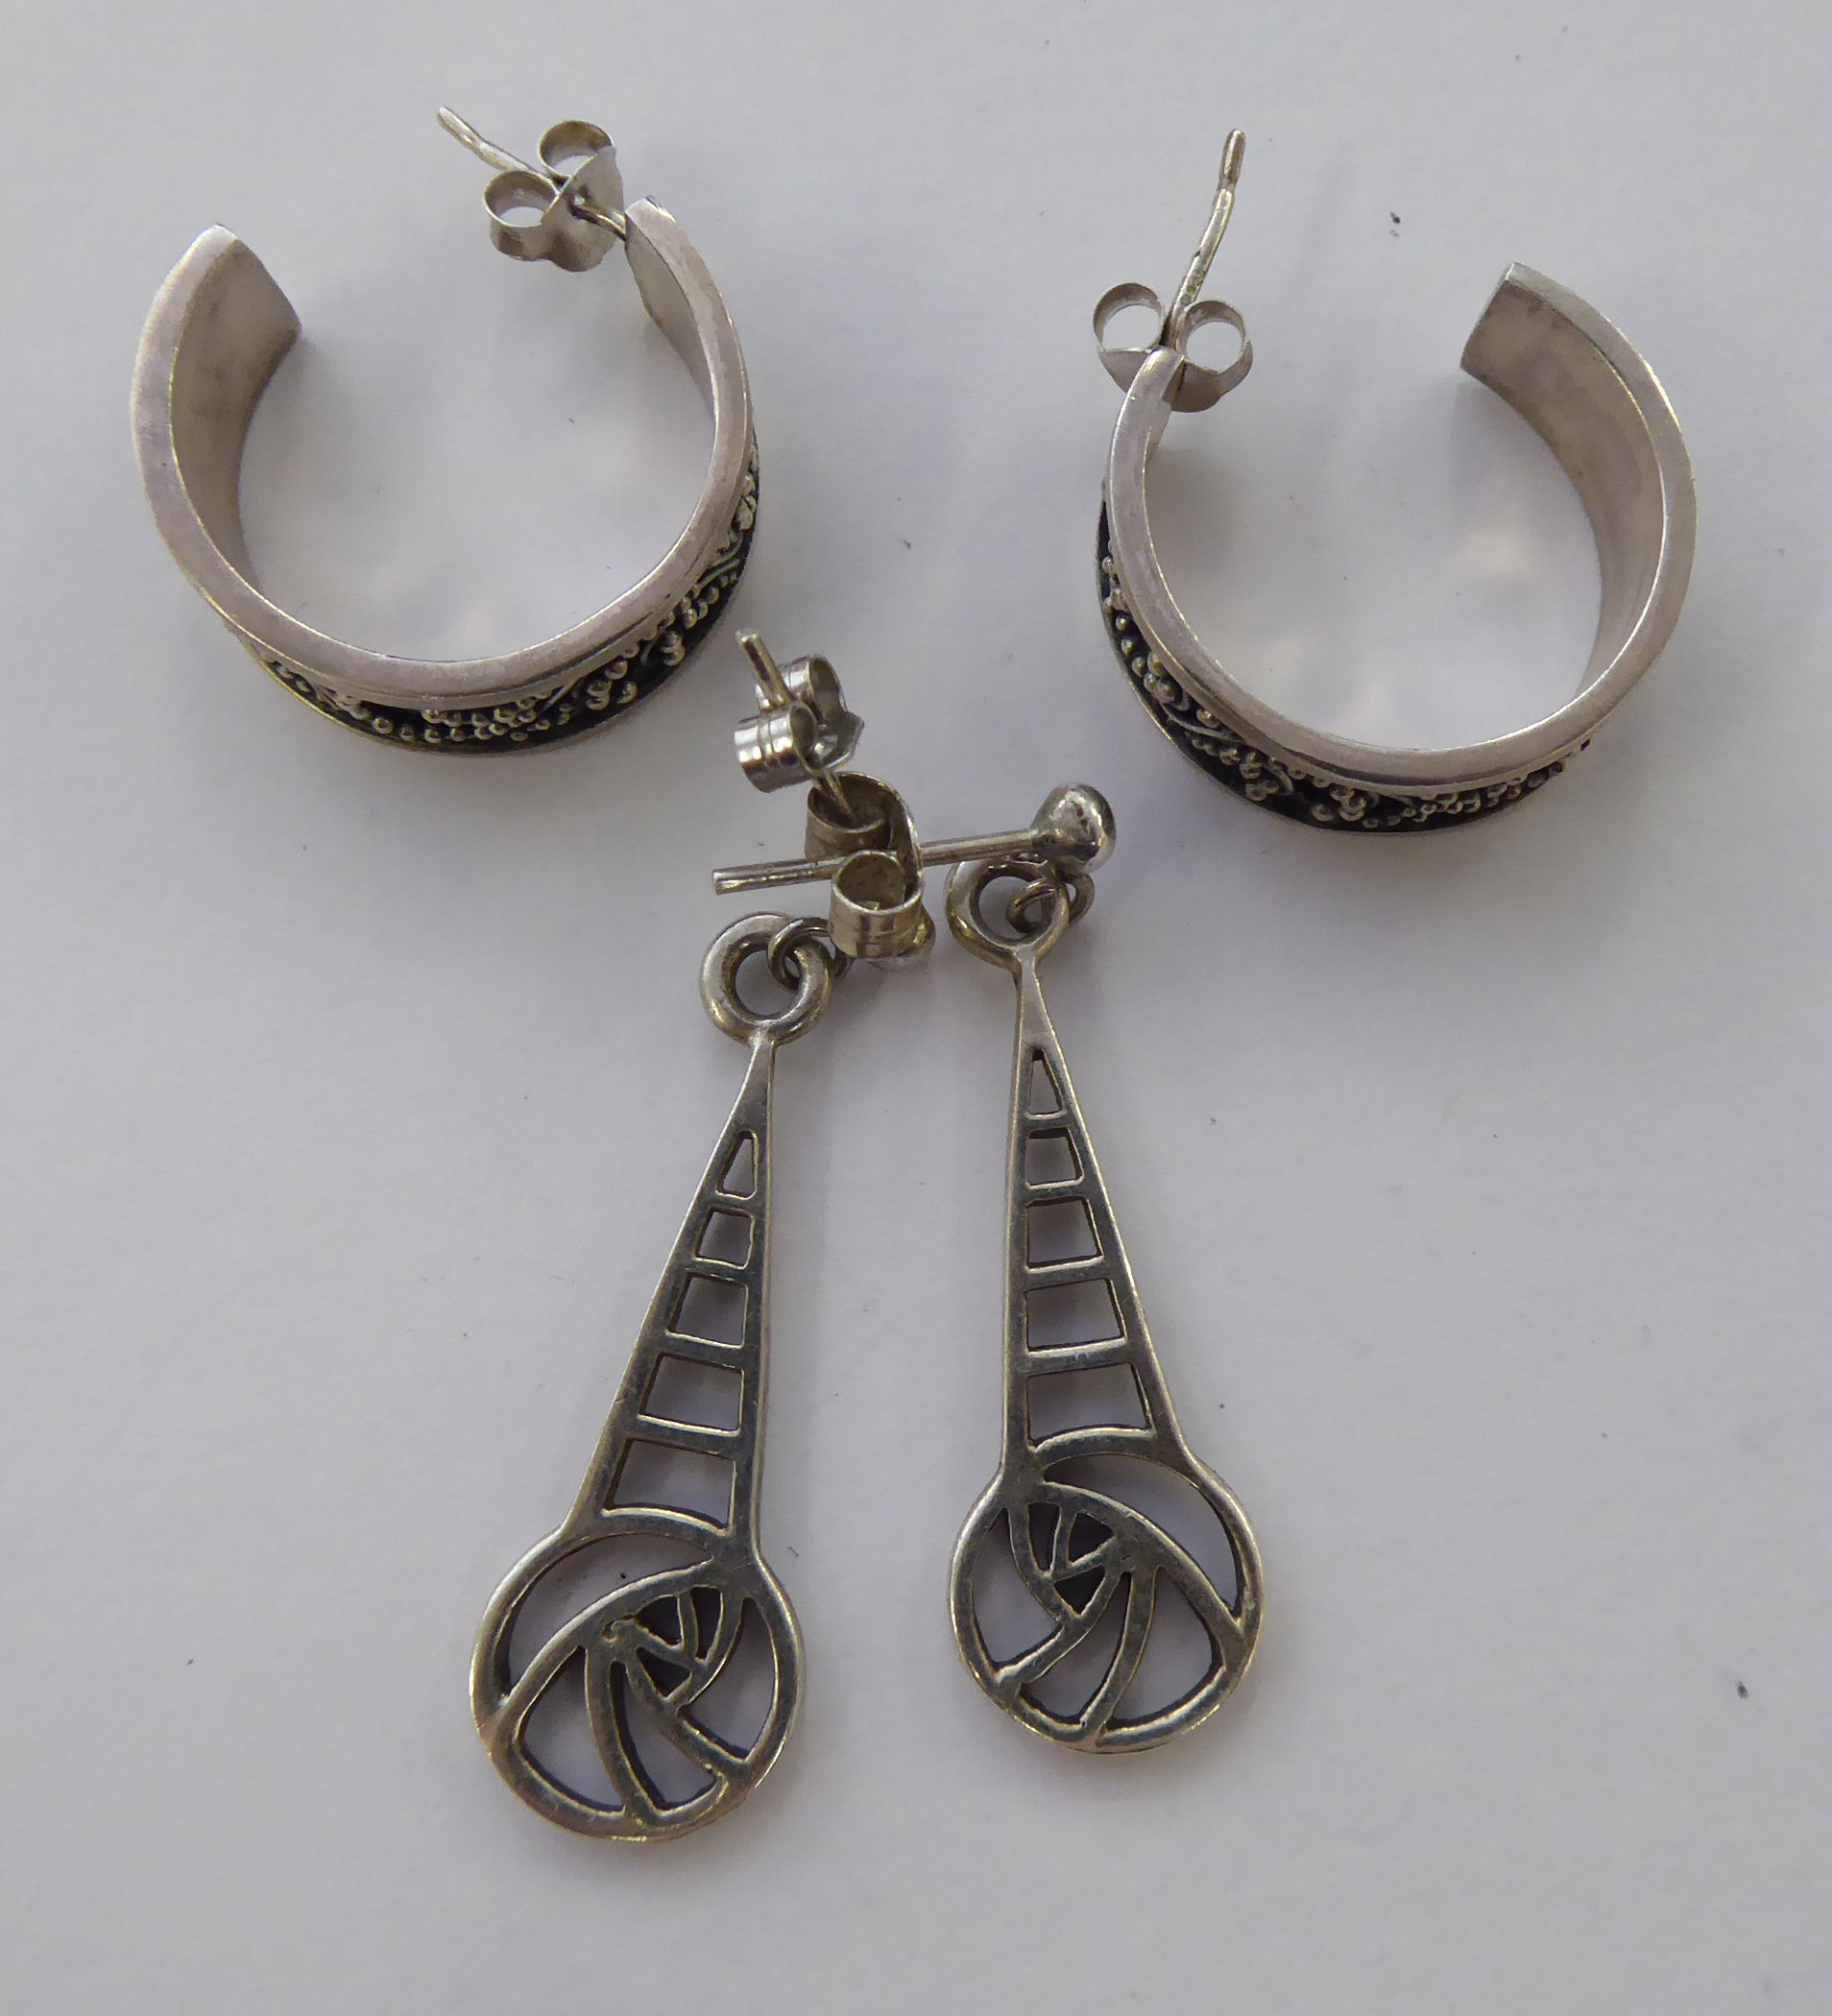 Lot 10 - Two dissimilar pairs of silver earrings 11